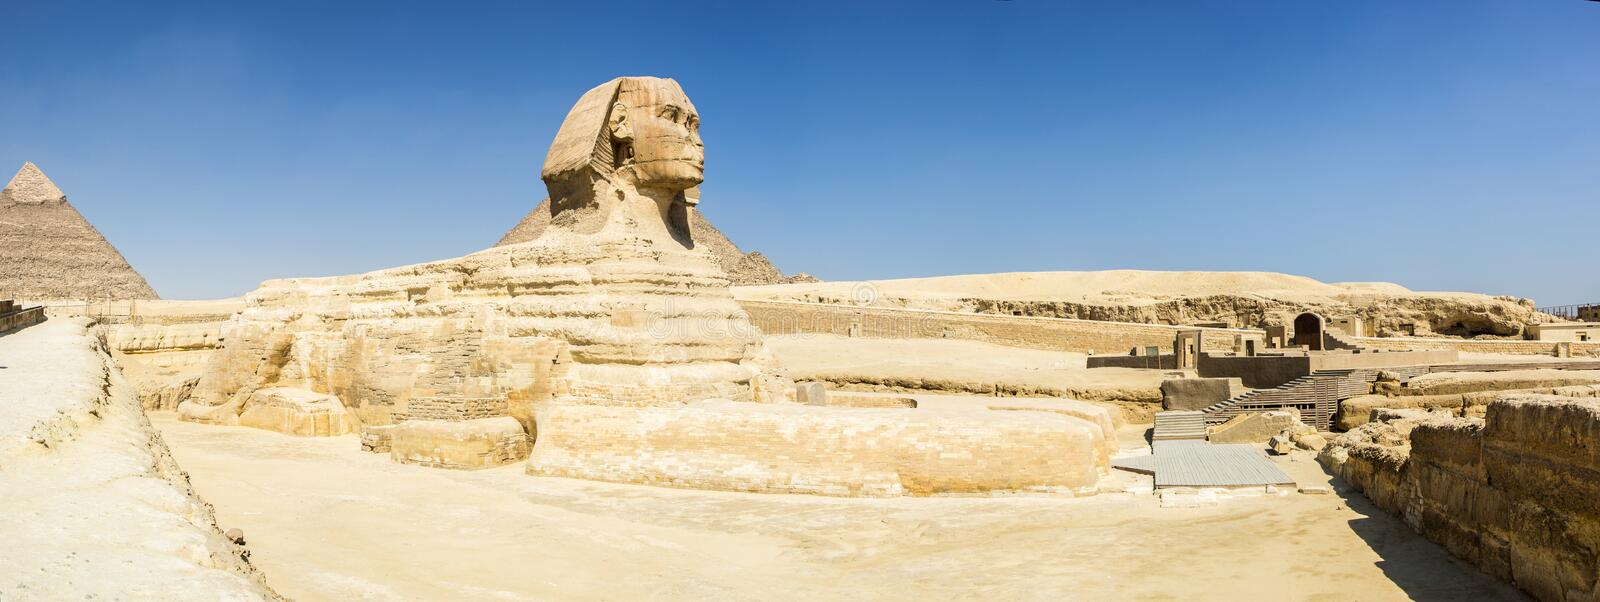 Sphinx panorama stock image